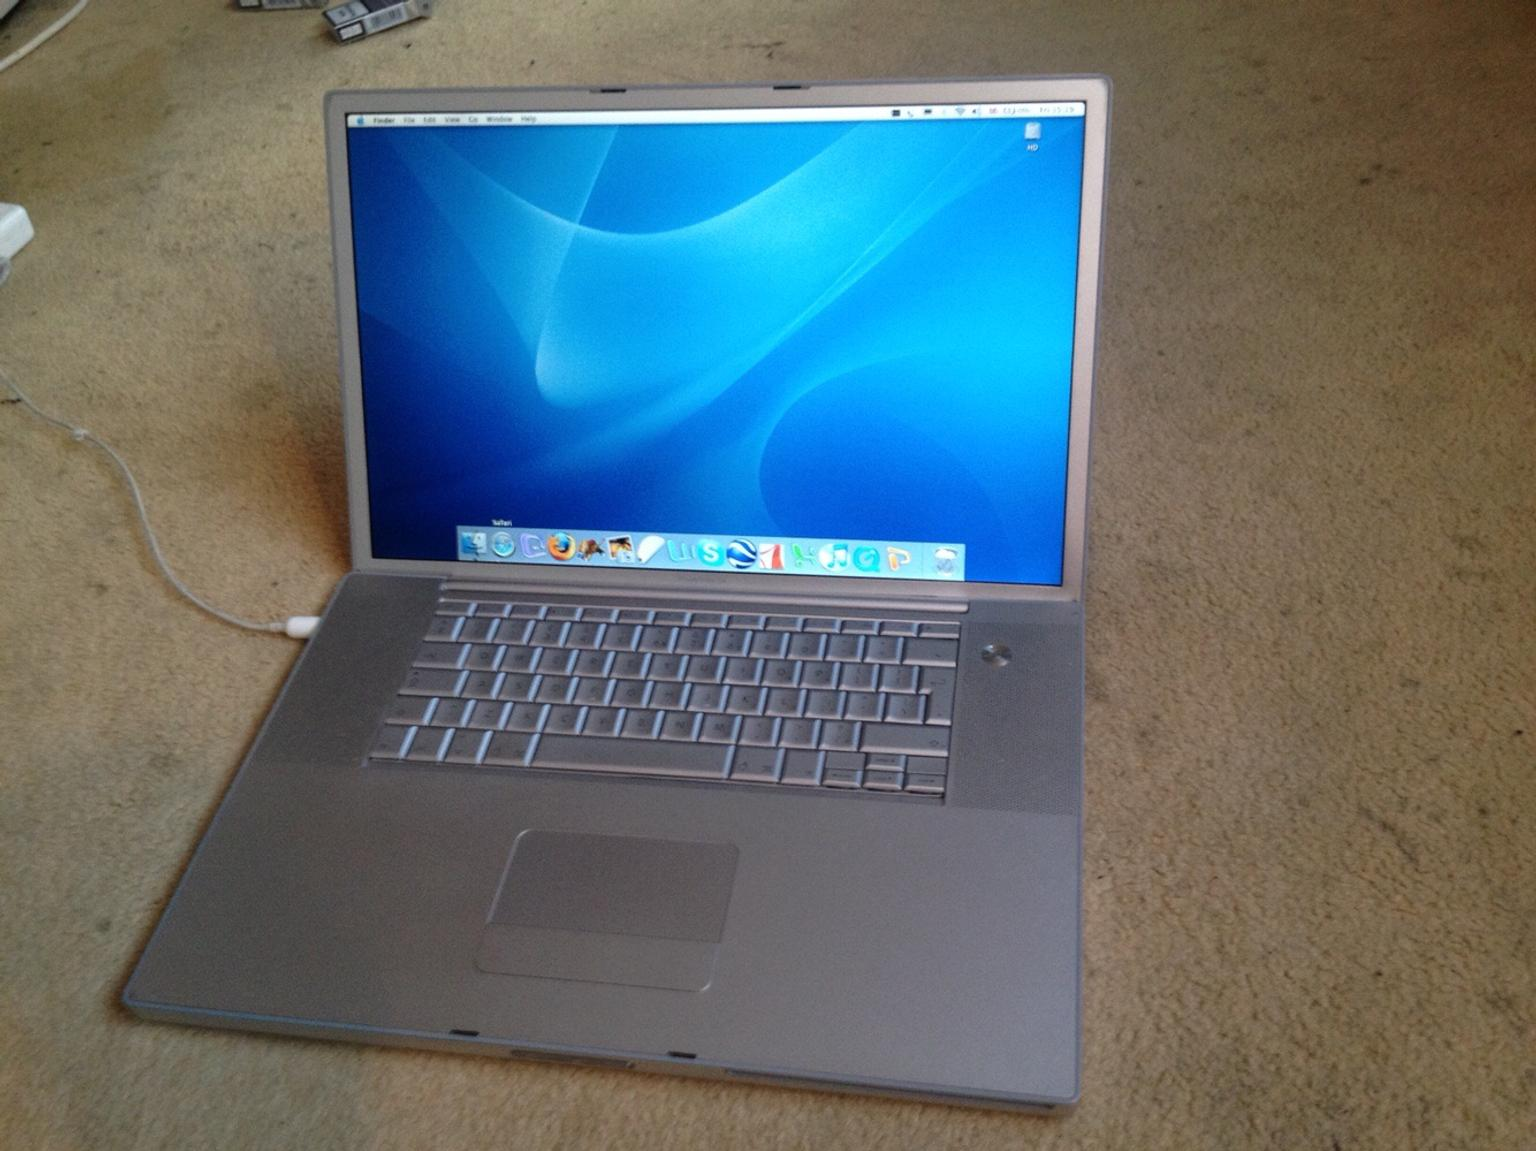 Super Apple Mac PowerBook G4 Laptop 17 inch screen in IG2 Ilford for FW-32